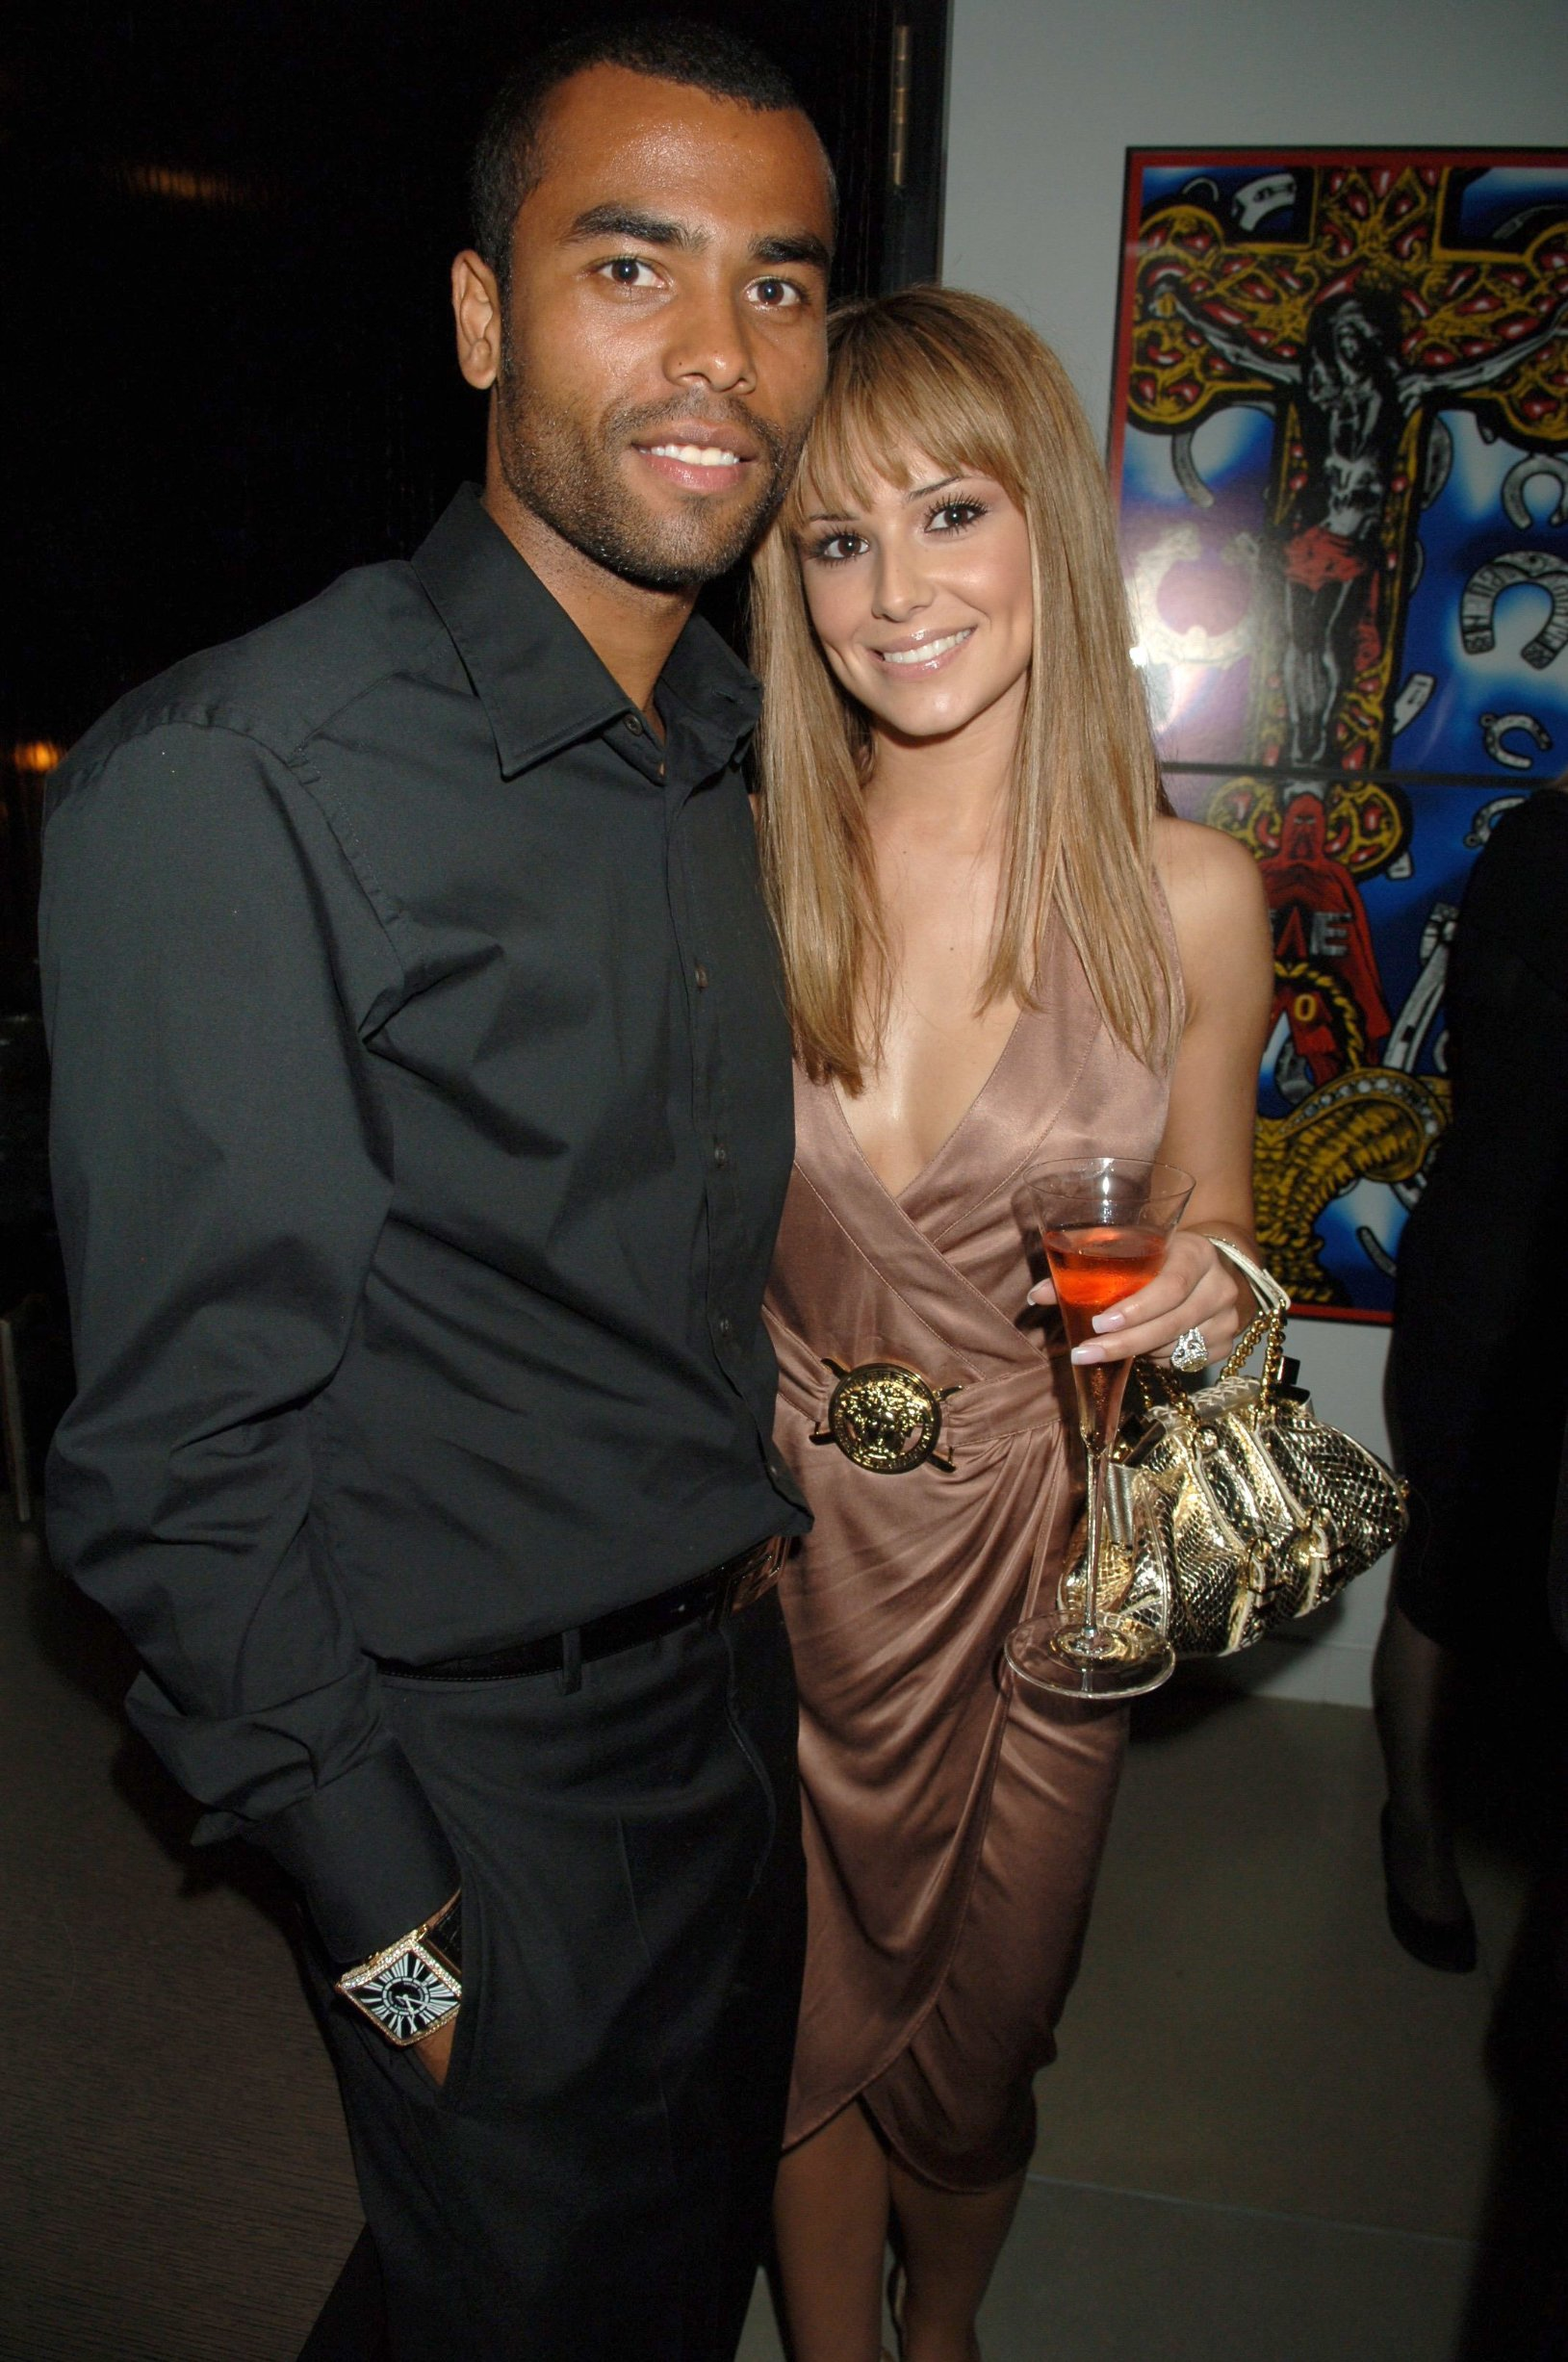 Ashley Cole and Cheryl Tweedy Donatella Versace dinner party, hosted by David Furnish and Liz Hurley at David Furnish's House, London, Britain - 07 Sep 2006, Image: 224815324, License: Rights-managed, Restrictions: , Model Release: no, Credit line: Profimedia, TEMP Shutterstock Editorial